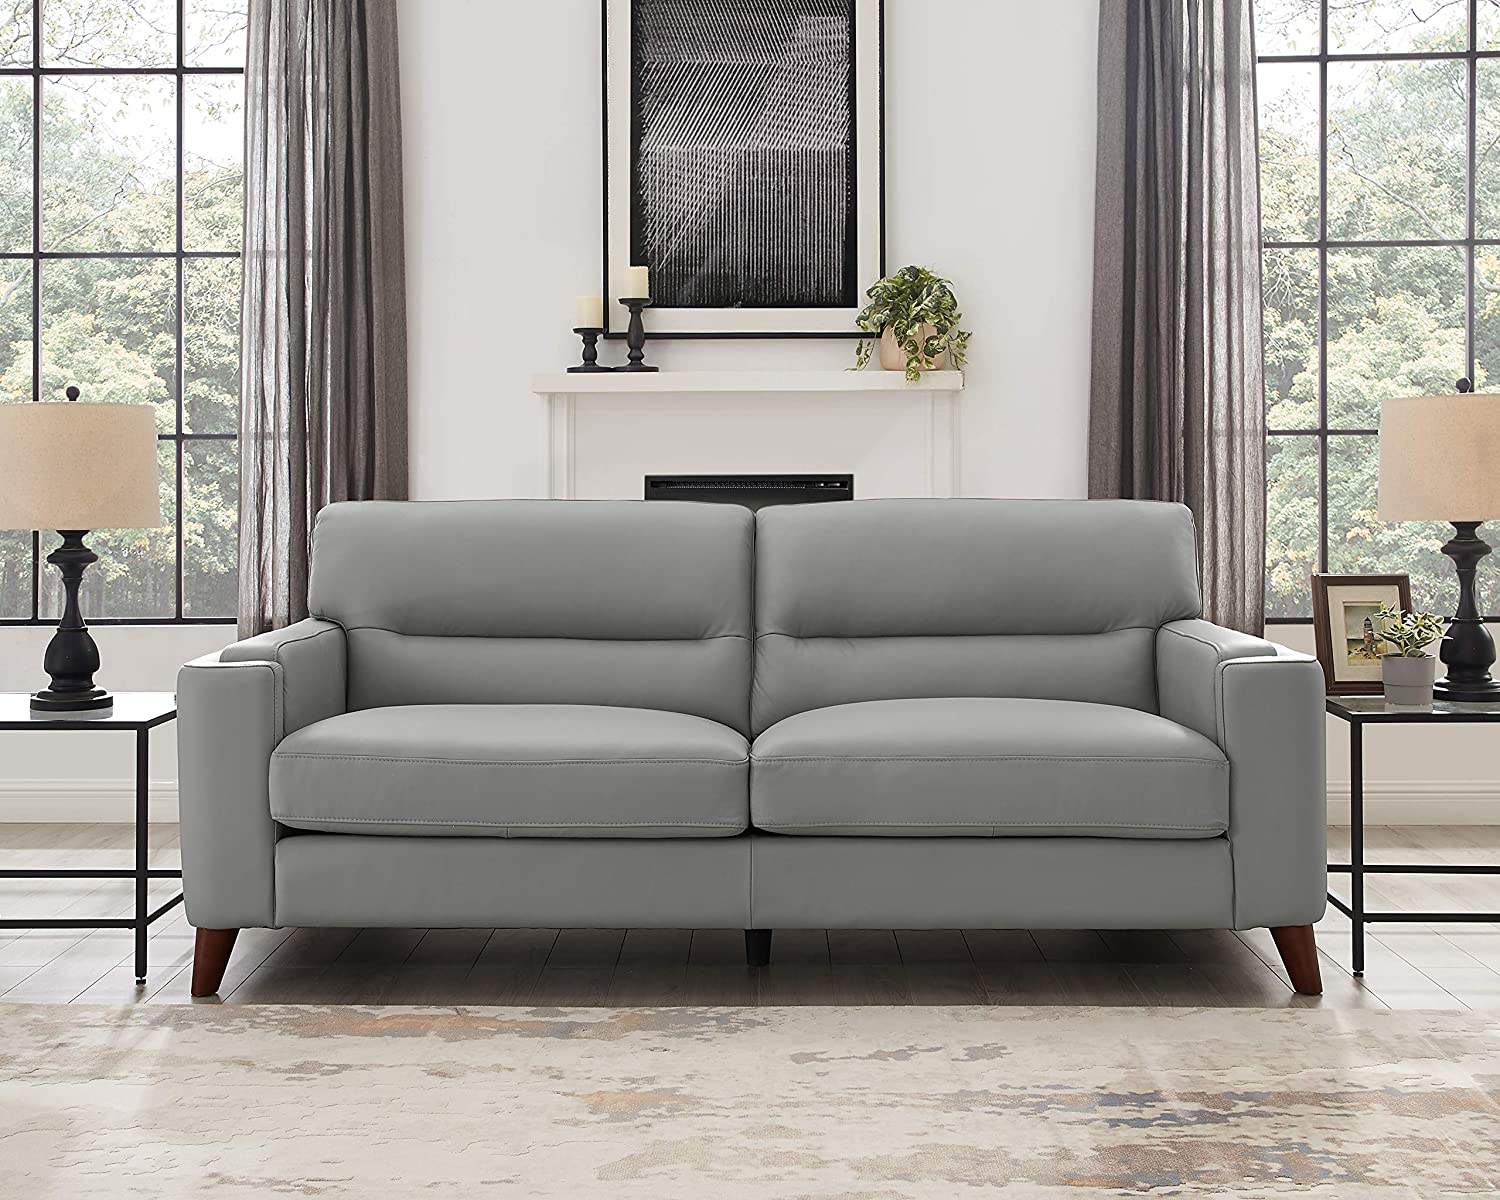 Hydeline Elm 100% Leather Set, Sofa, Loveseat and Chair, Silver Gray